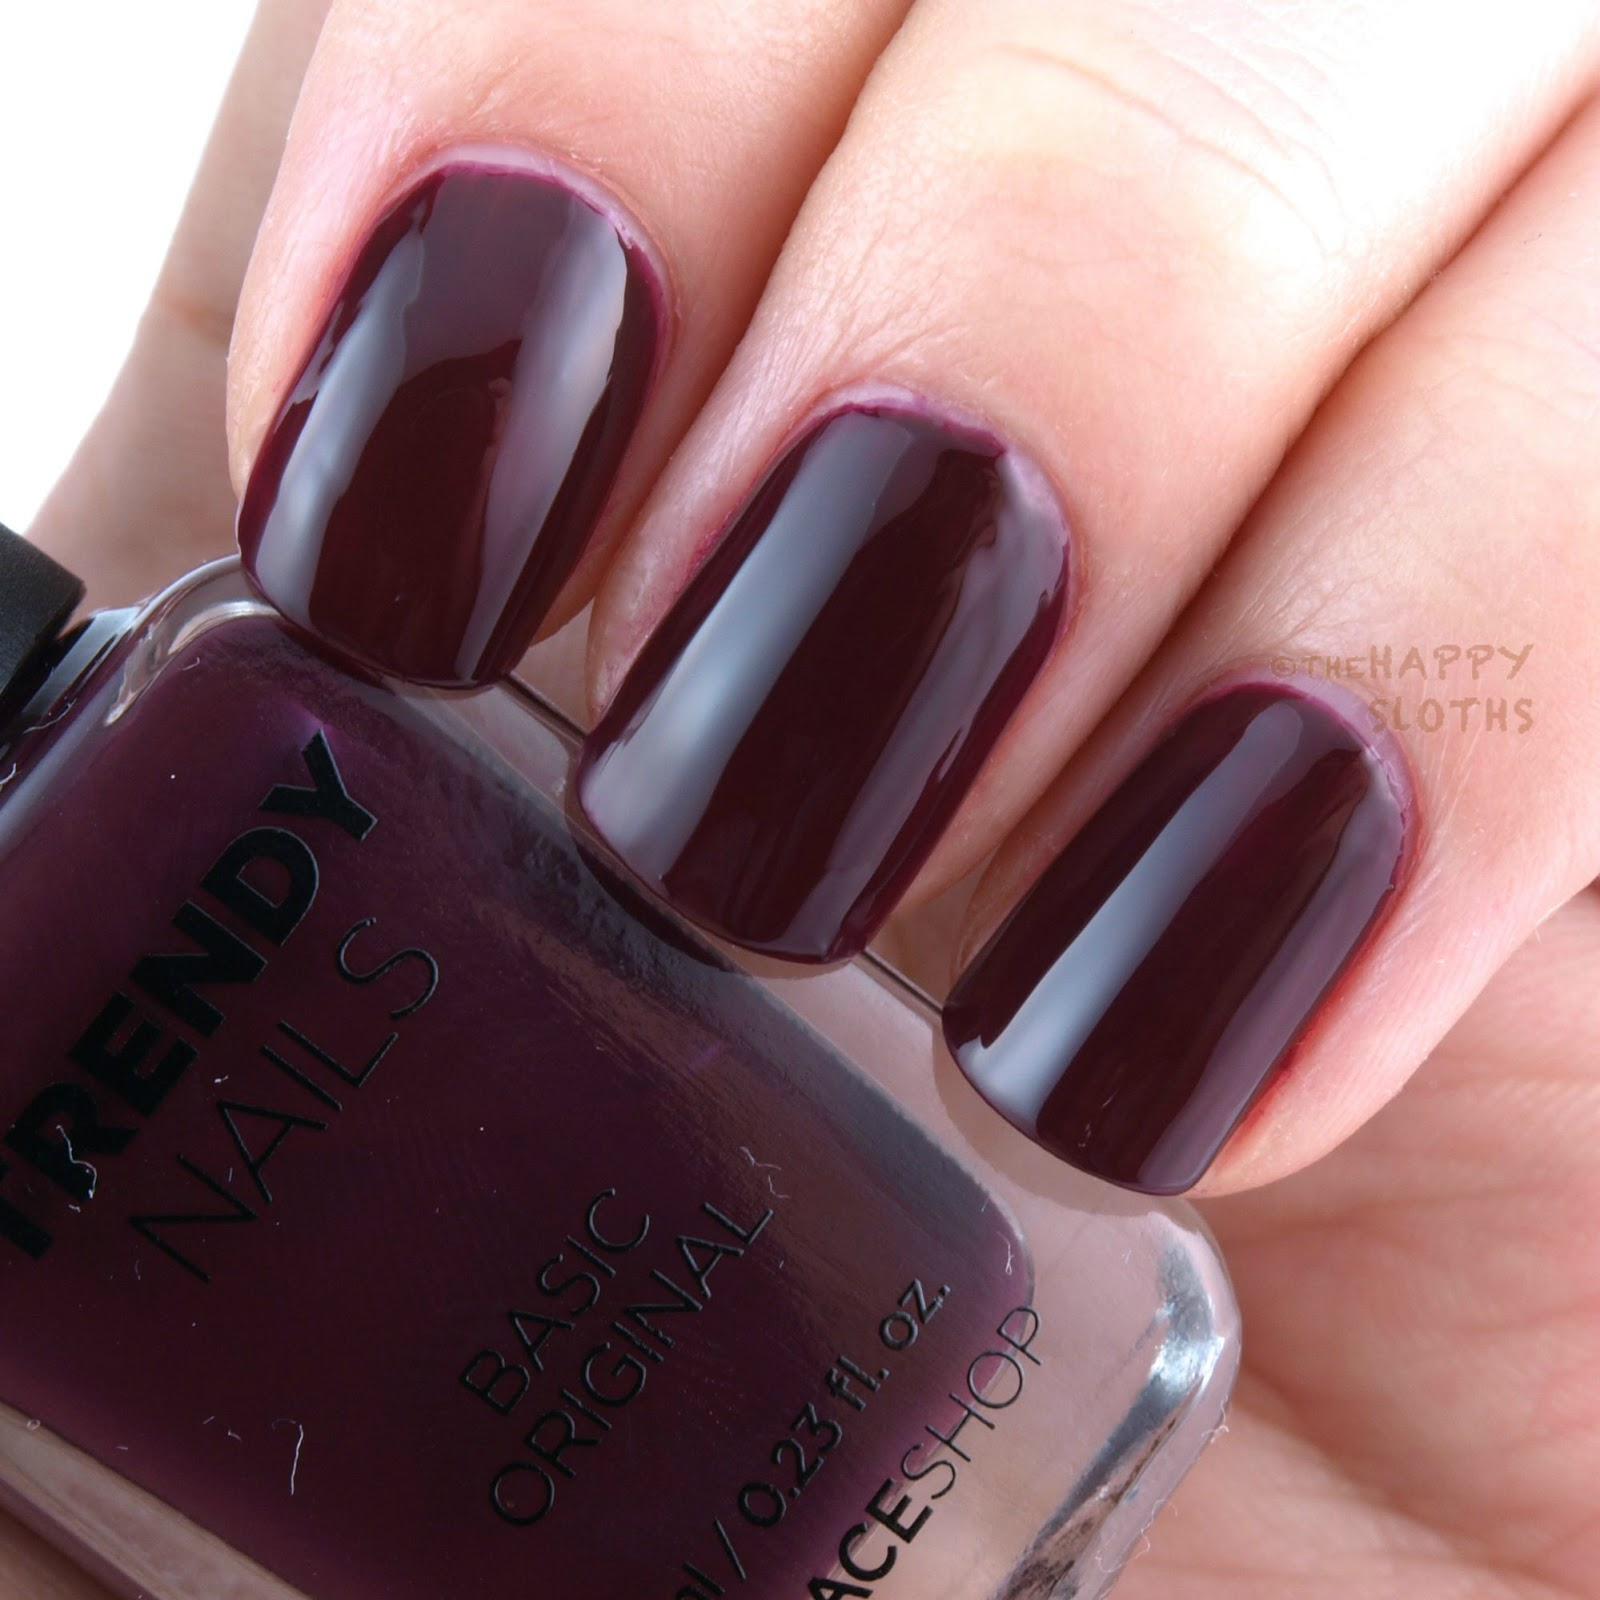 THEFACESHOP Holiday 2015 Trendy Nails Nail Polish Collection: Review ...